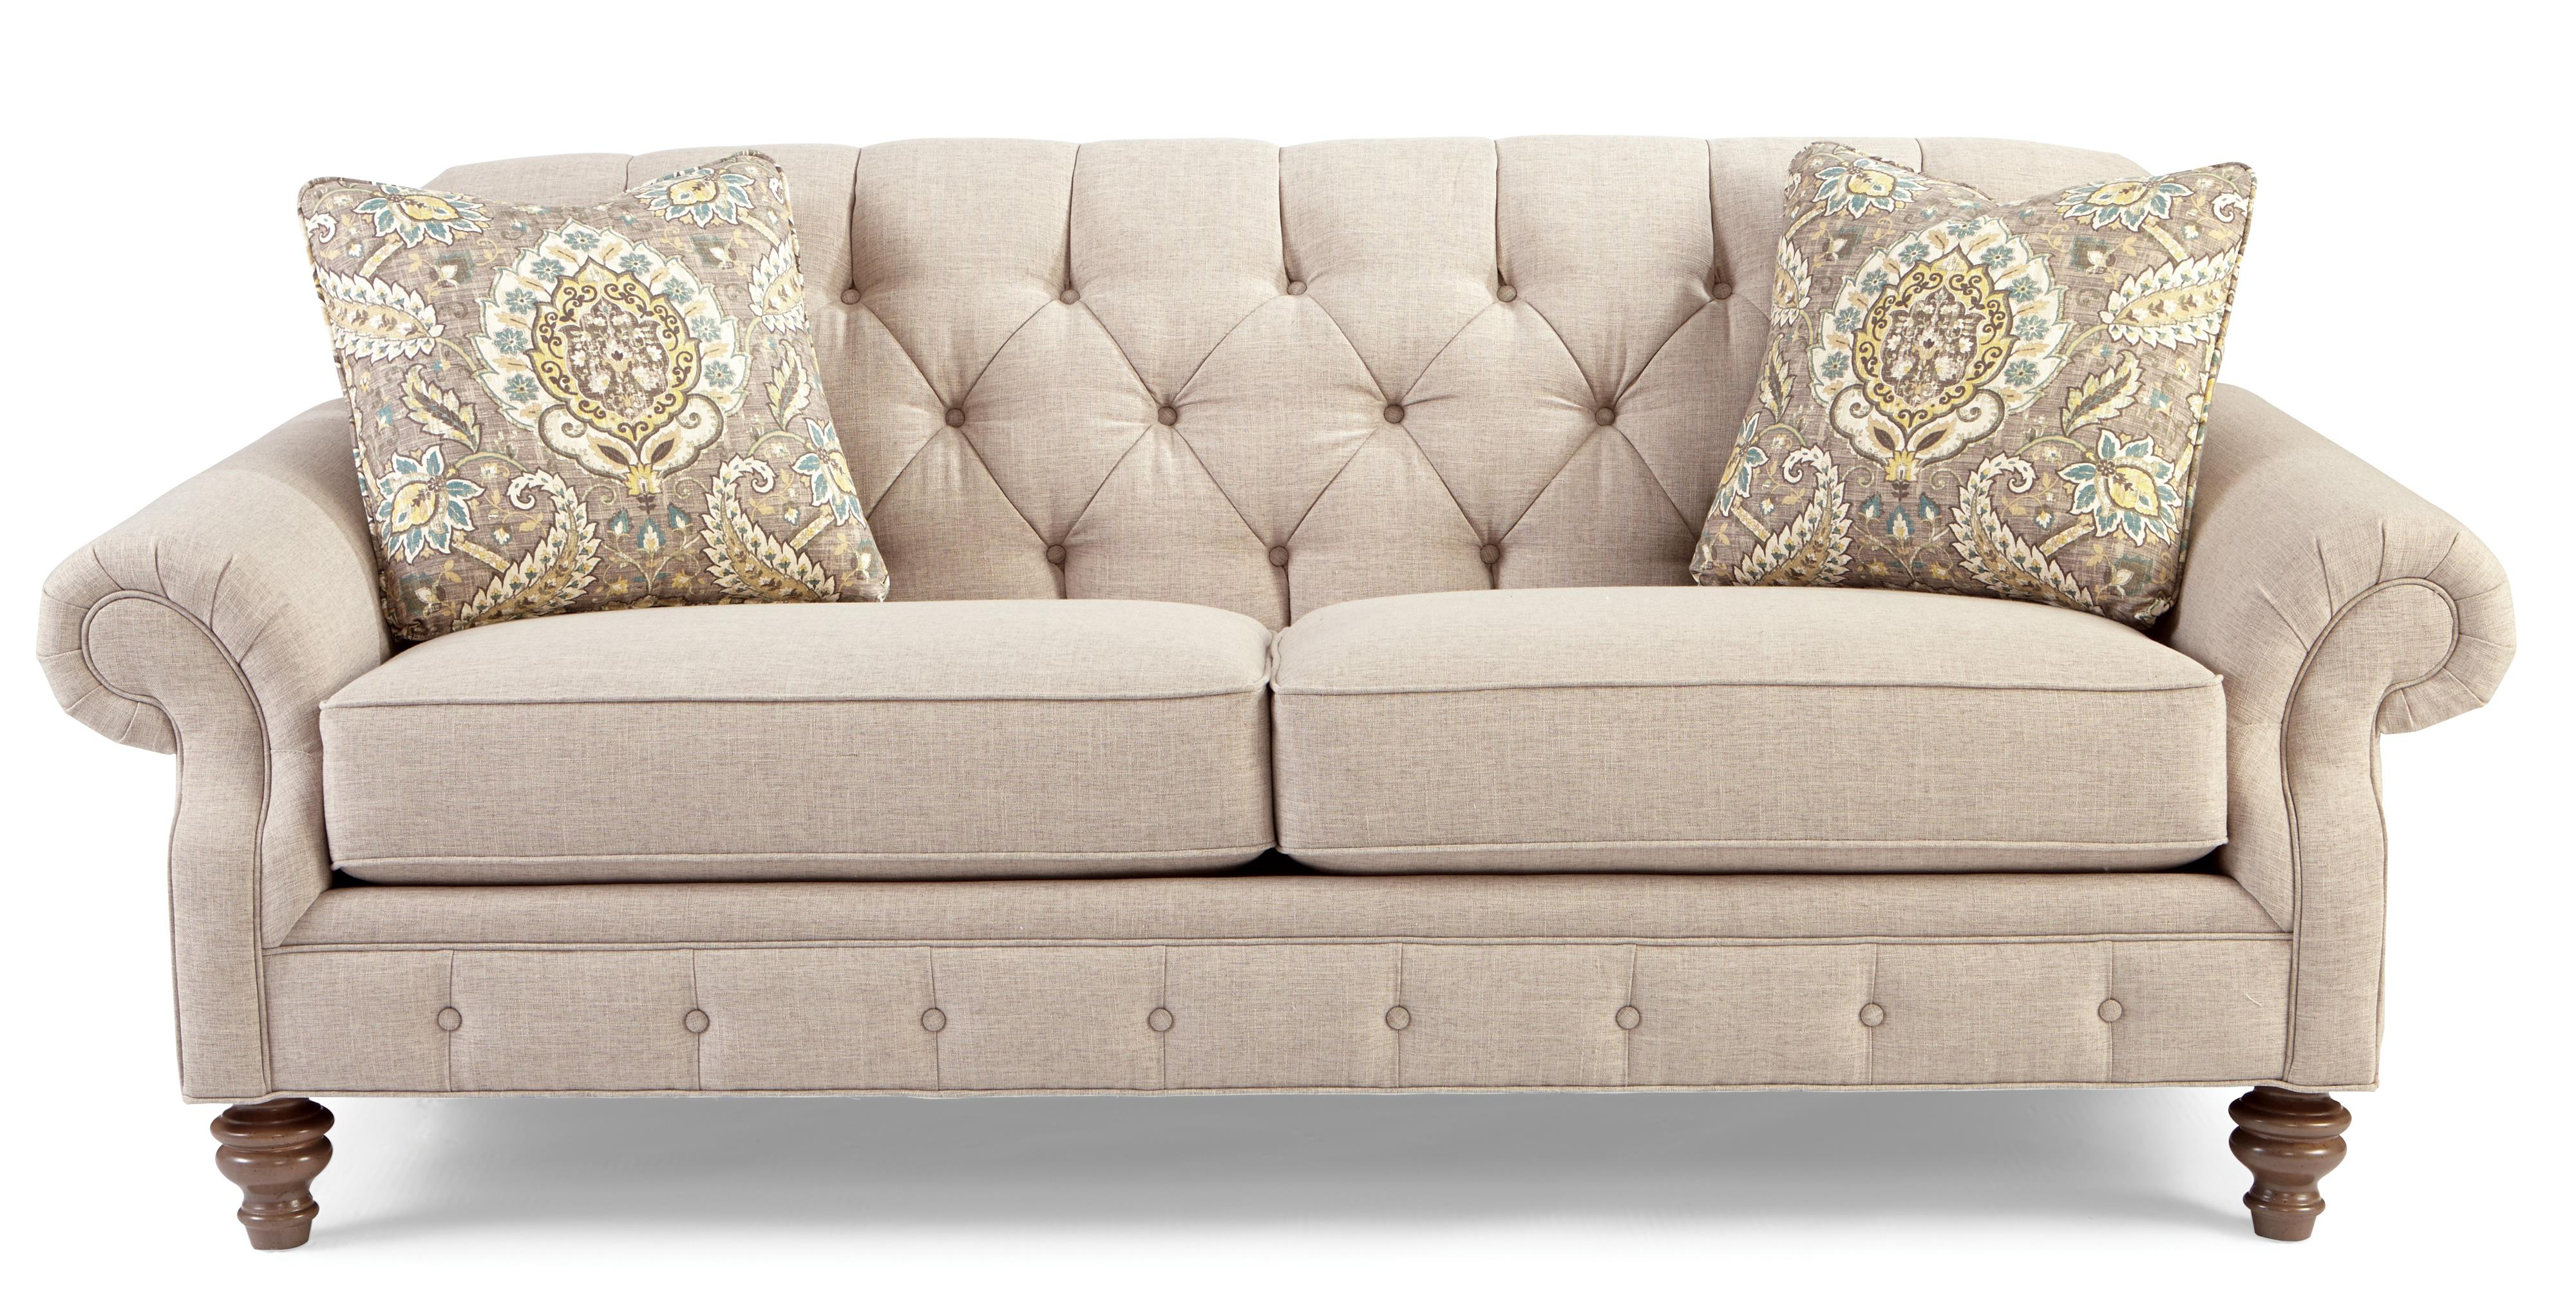 traditional button-tufted sofa with wide flared arms TLPCYCF